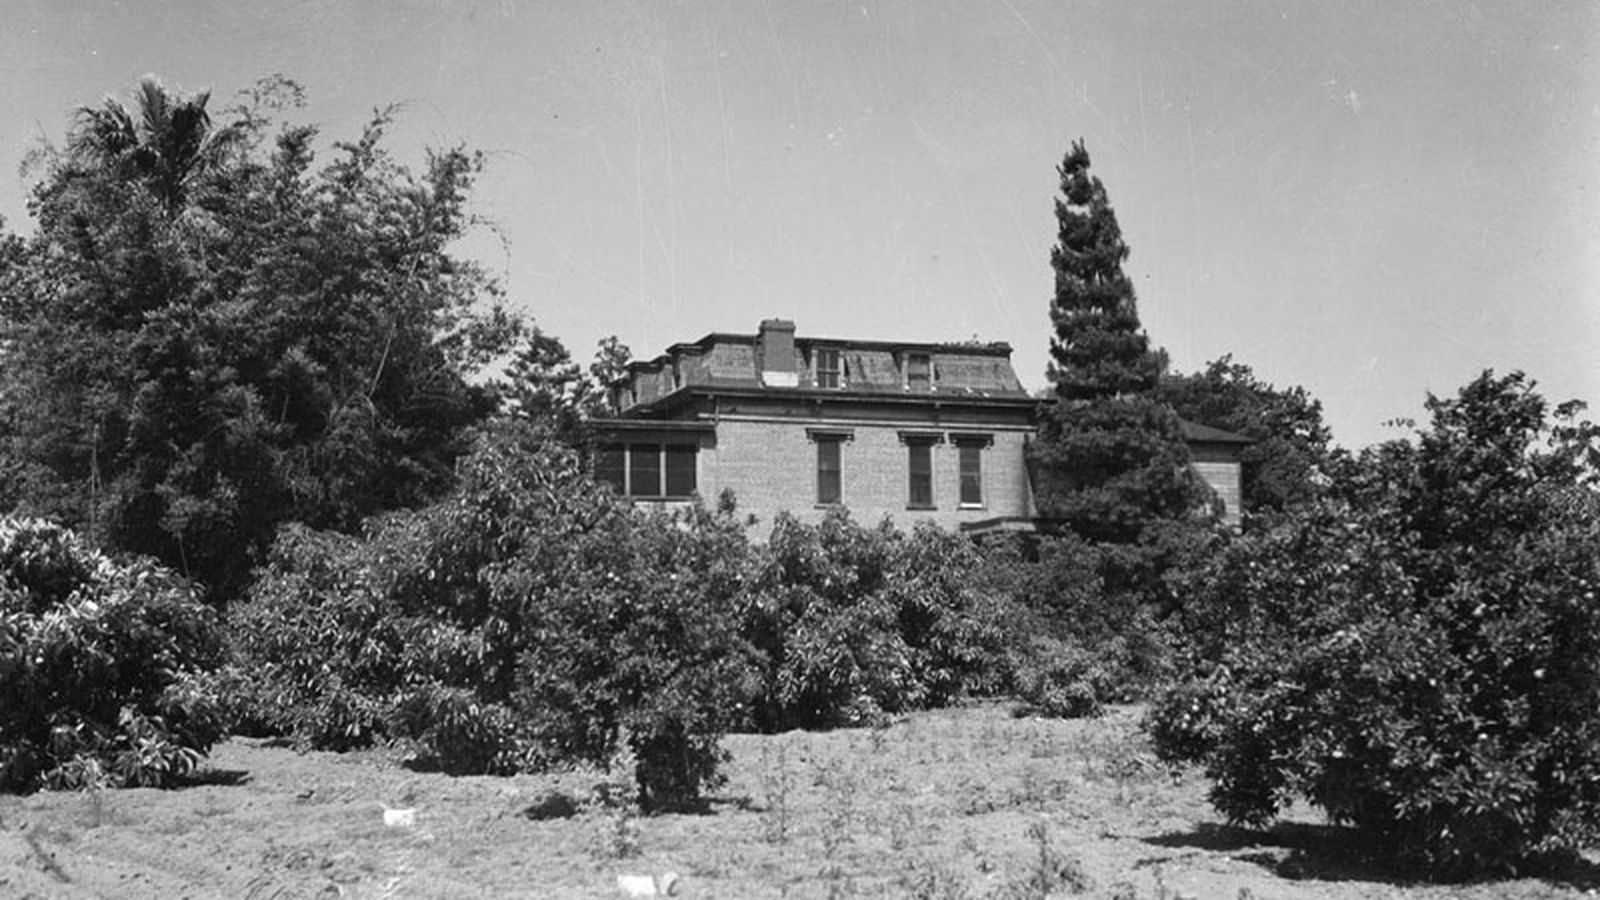 Phillips Mansion The Deserted Hub Of A Lost California